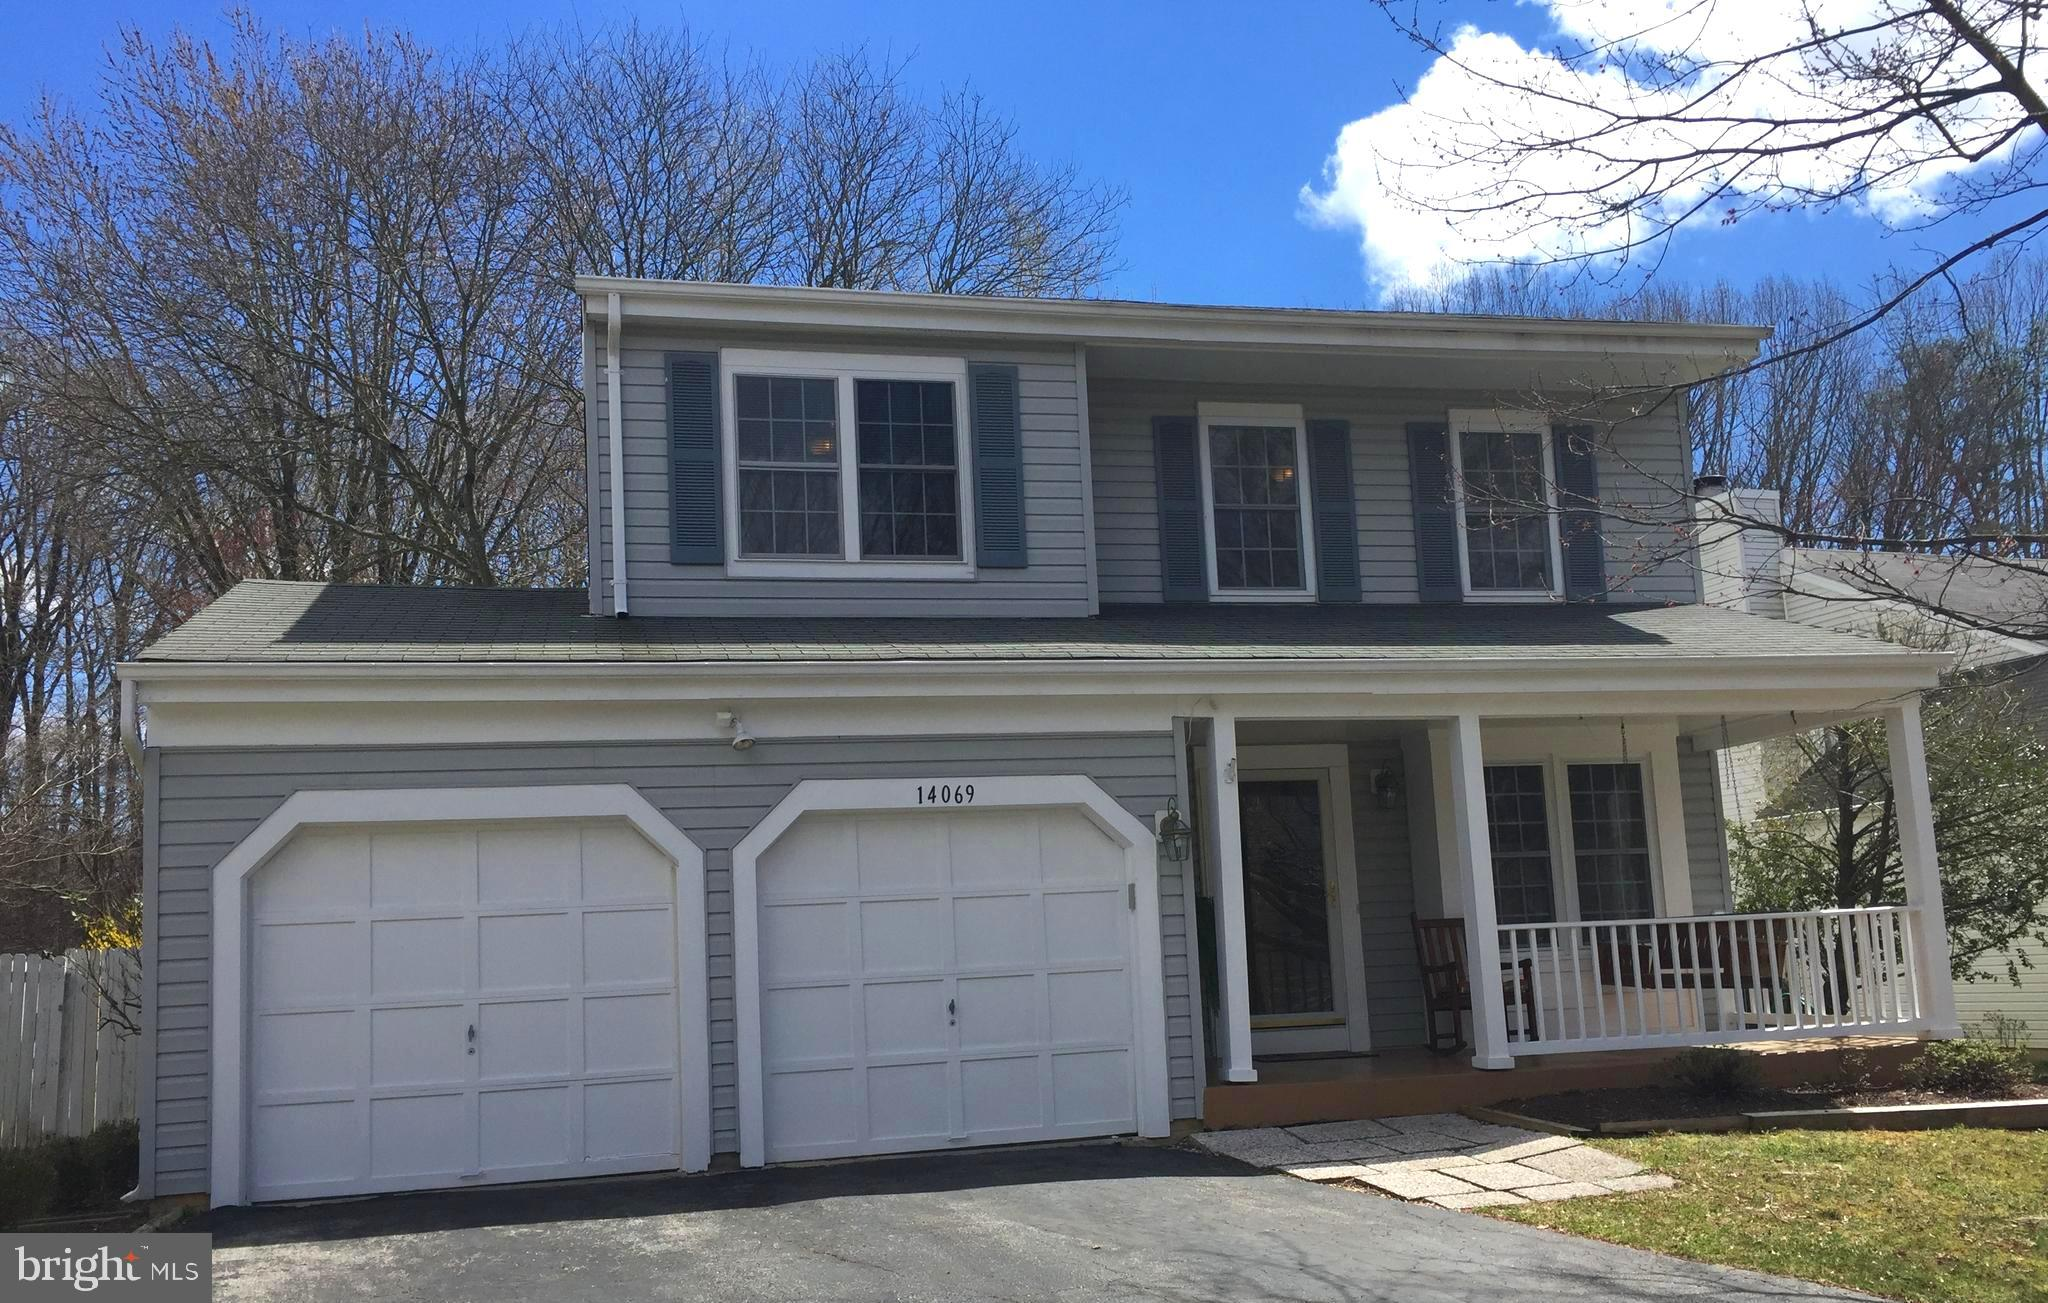 14069 SADDLEVIEW DRIVE NW, NORTH POTOMAC, MD 20878